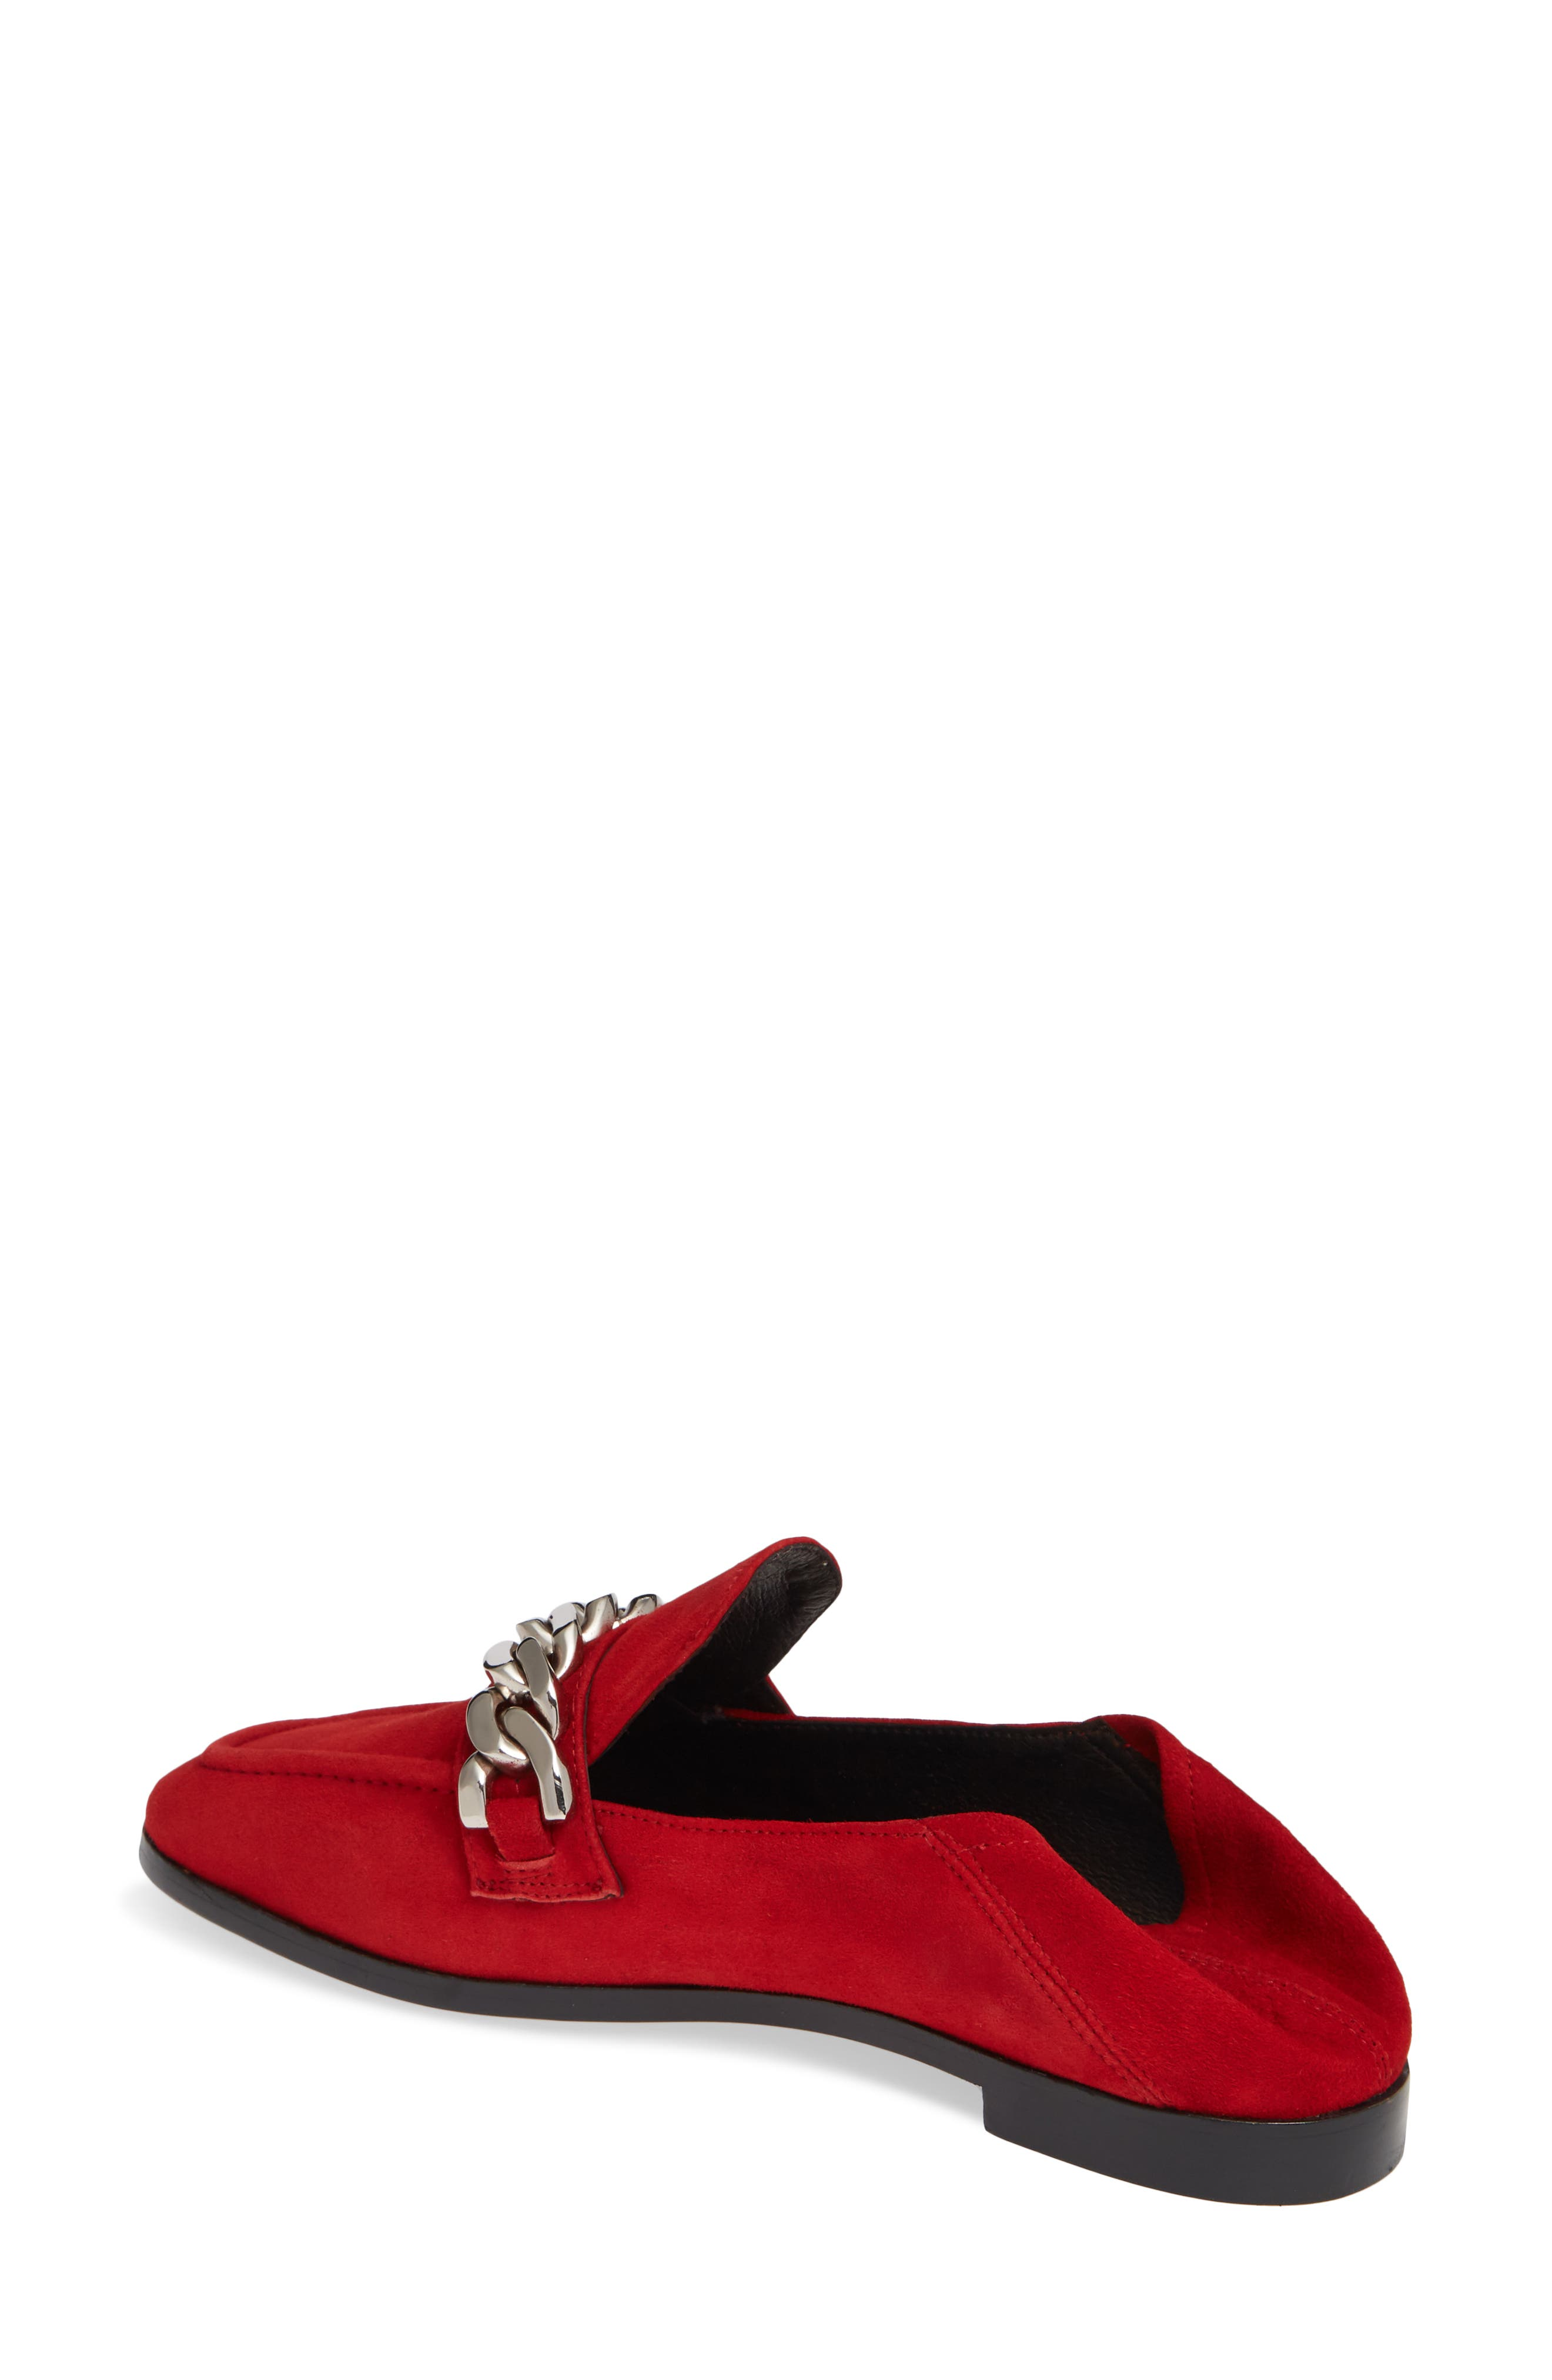 Jesse Convertible Heel Loafer,                             Alternate thumbnail 3, color,                             RED SUEDE SILVER